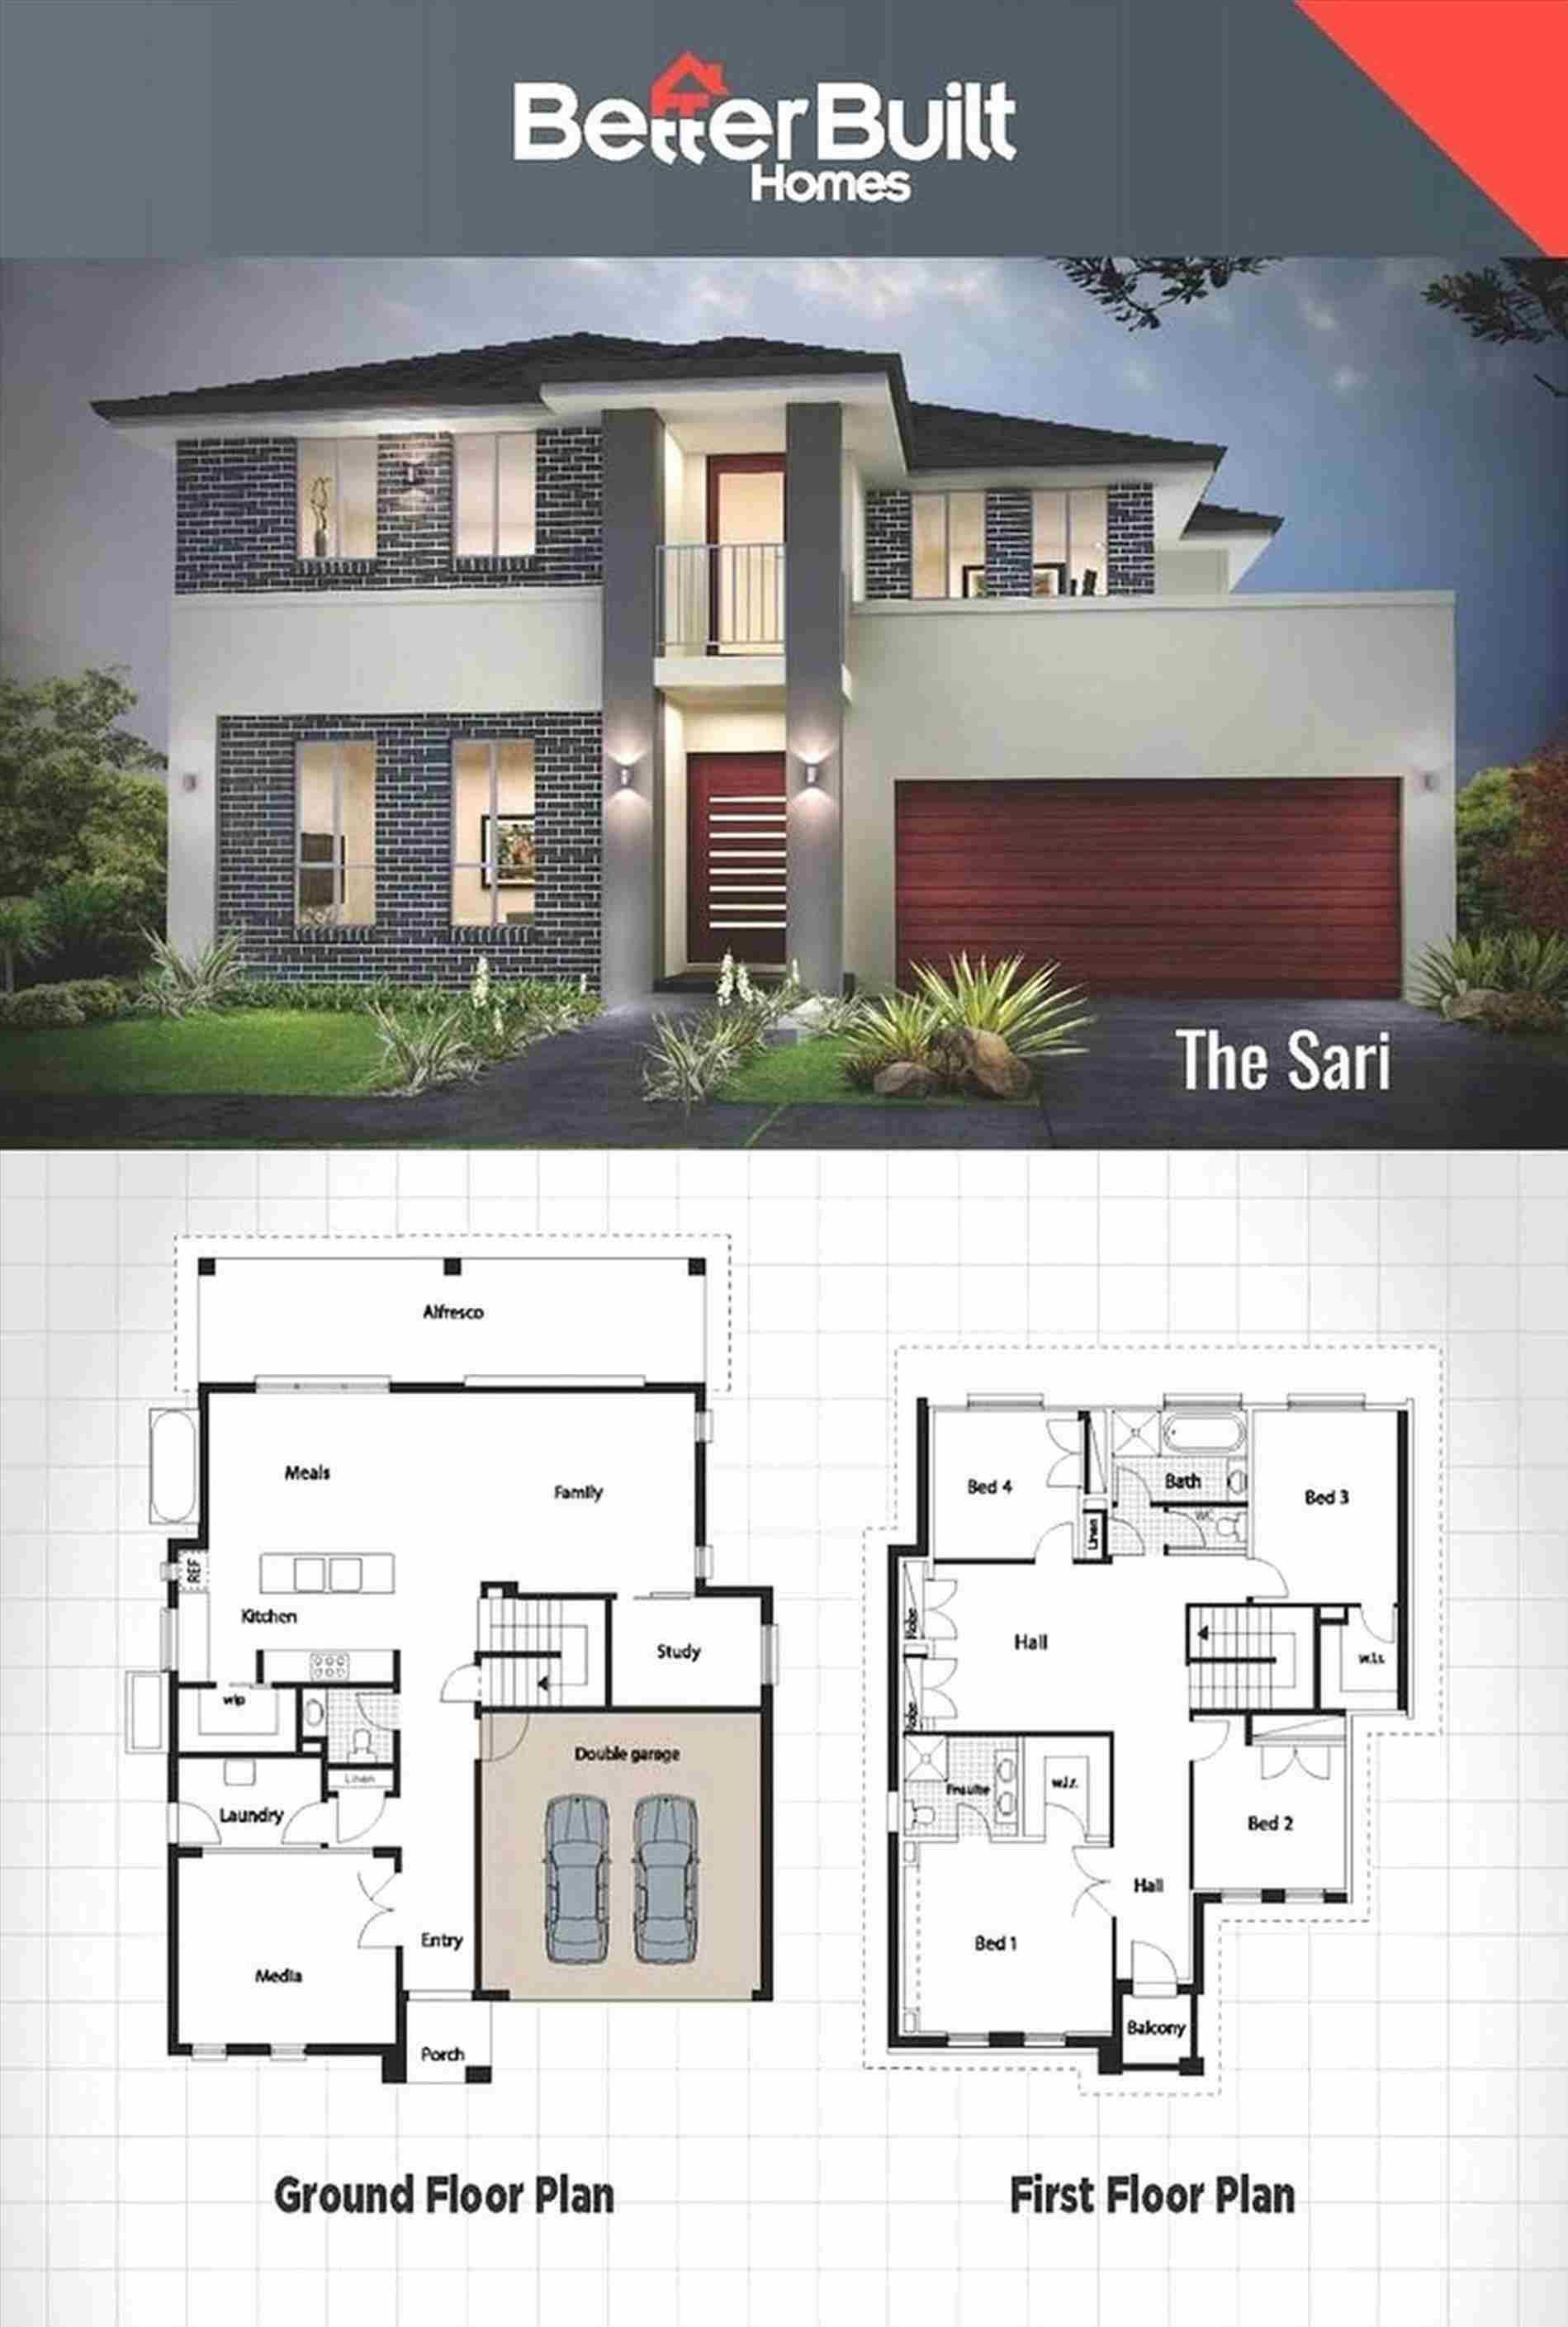 2 Storey House Plans Philippines With Blueprint Double Storey House Modern House Plans Double Storey House Plans